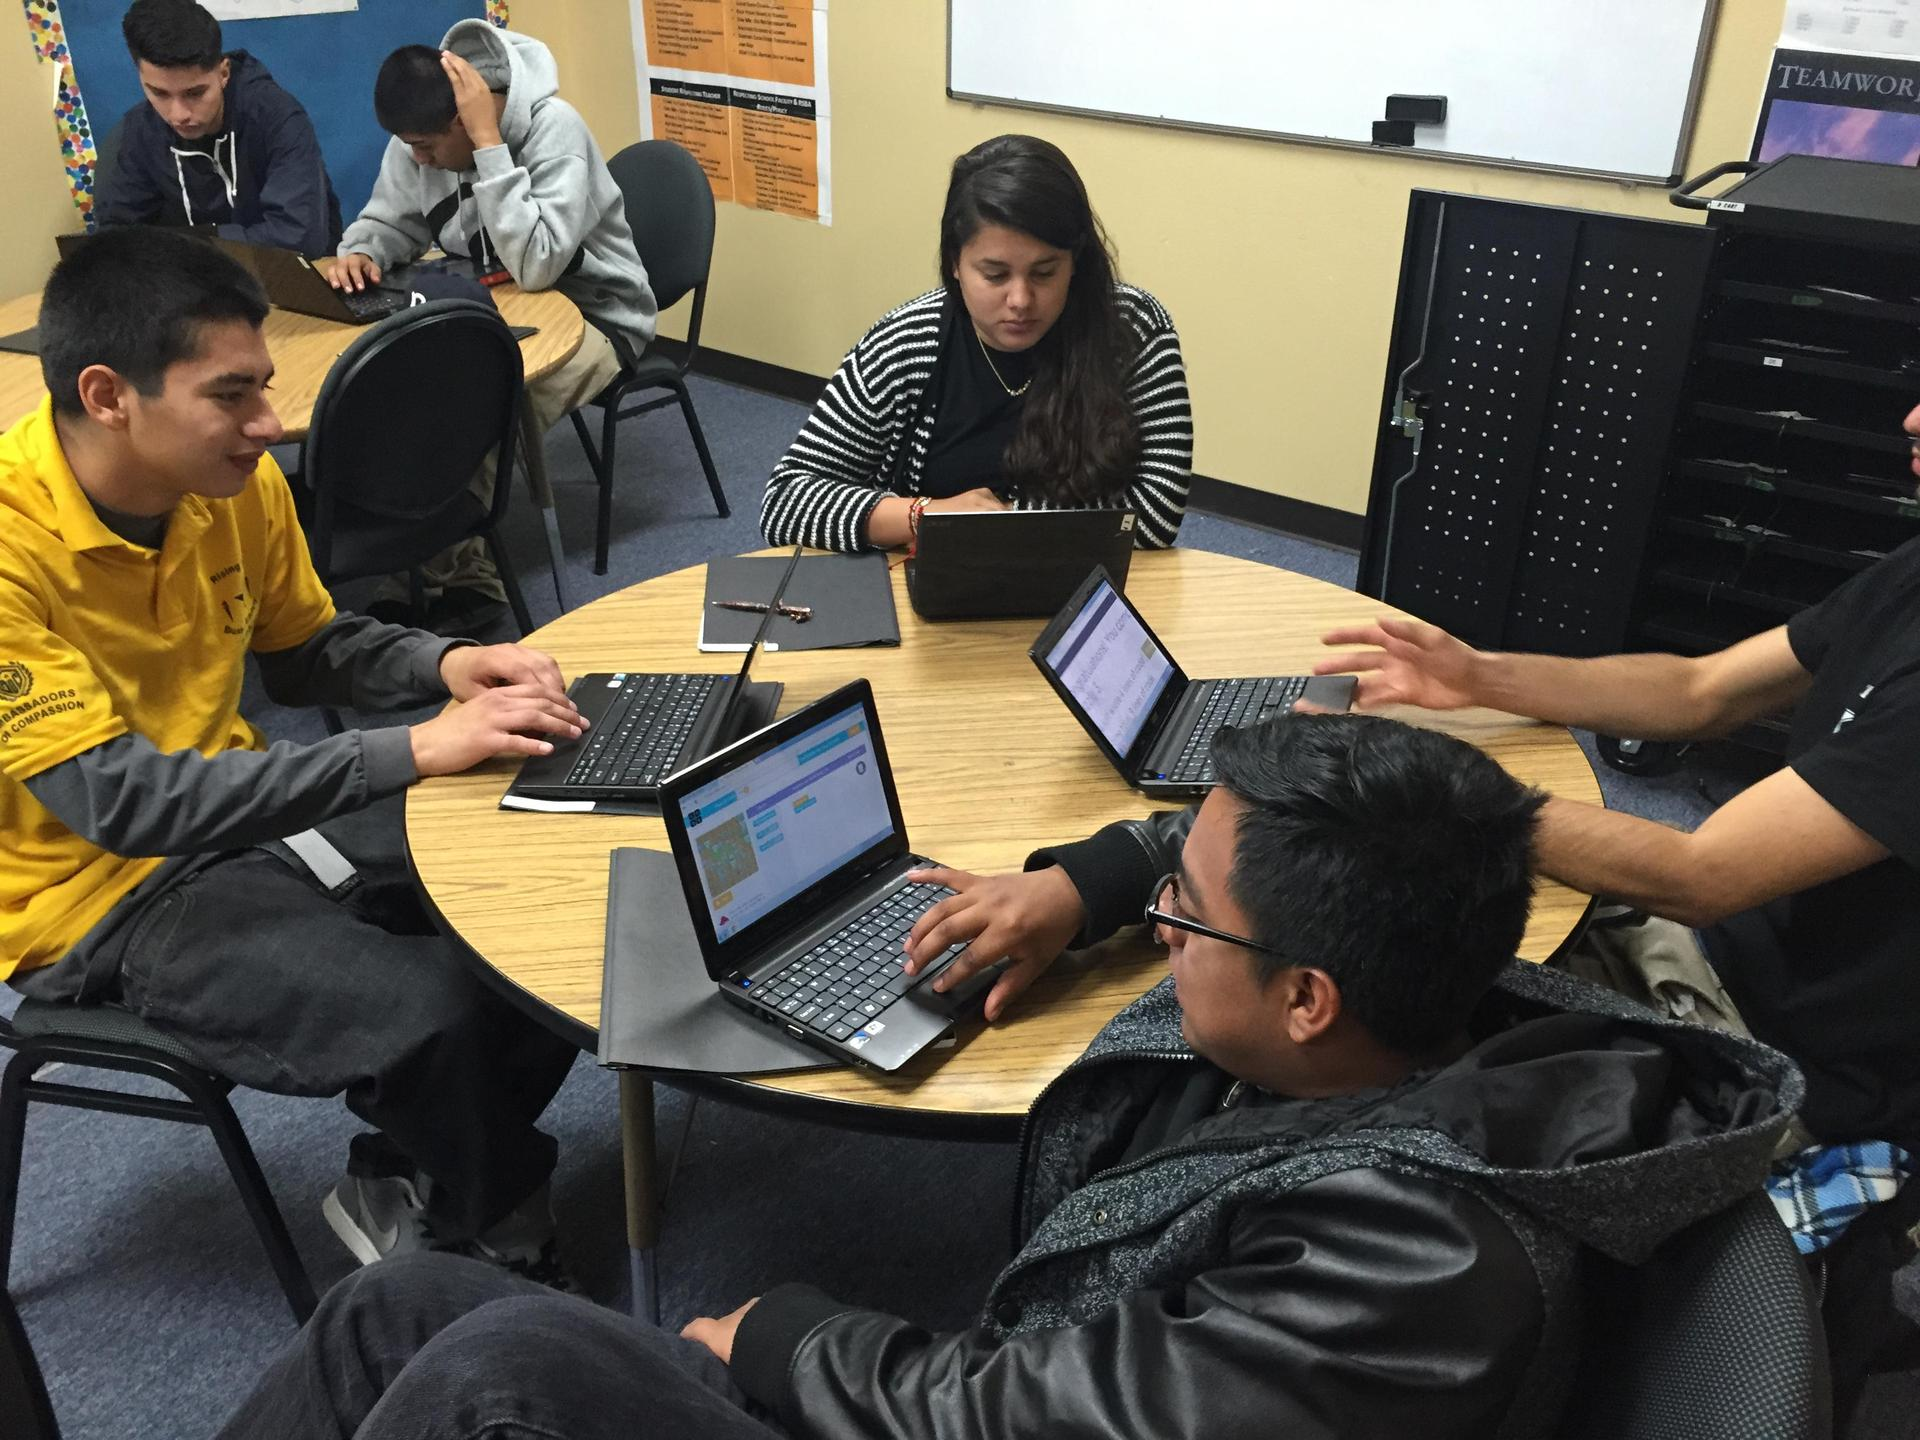 Moreno Valley students coding on laptops